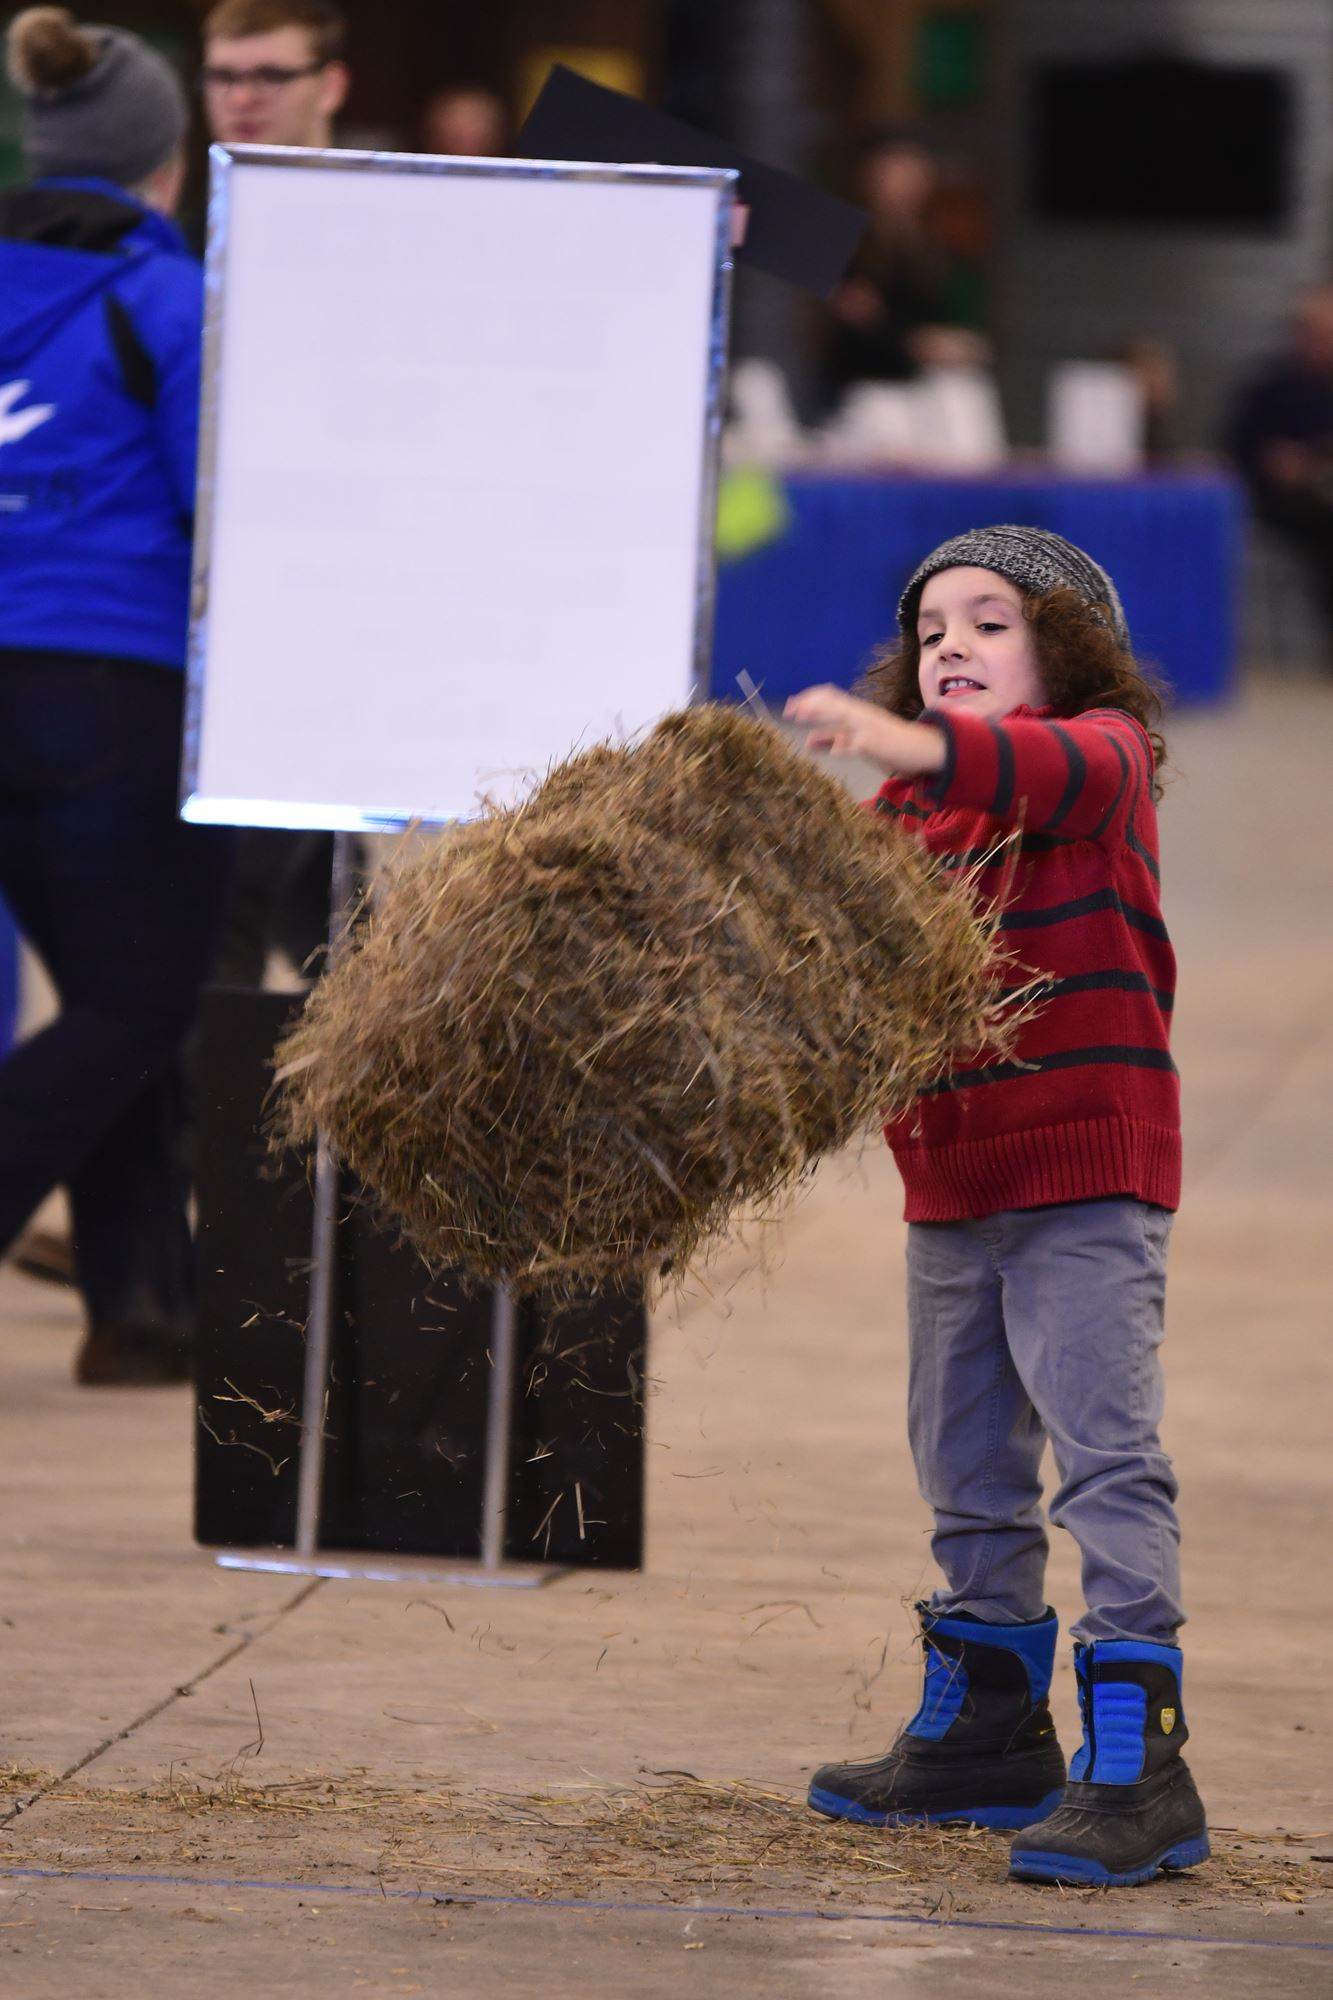 Child throwing Hay Bale